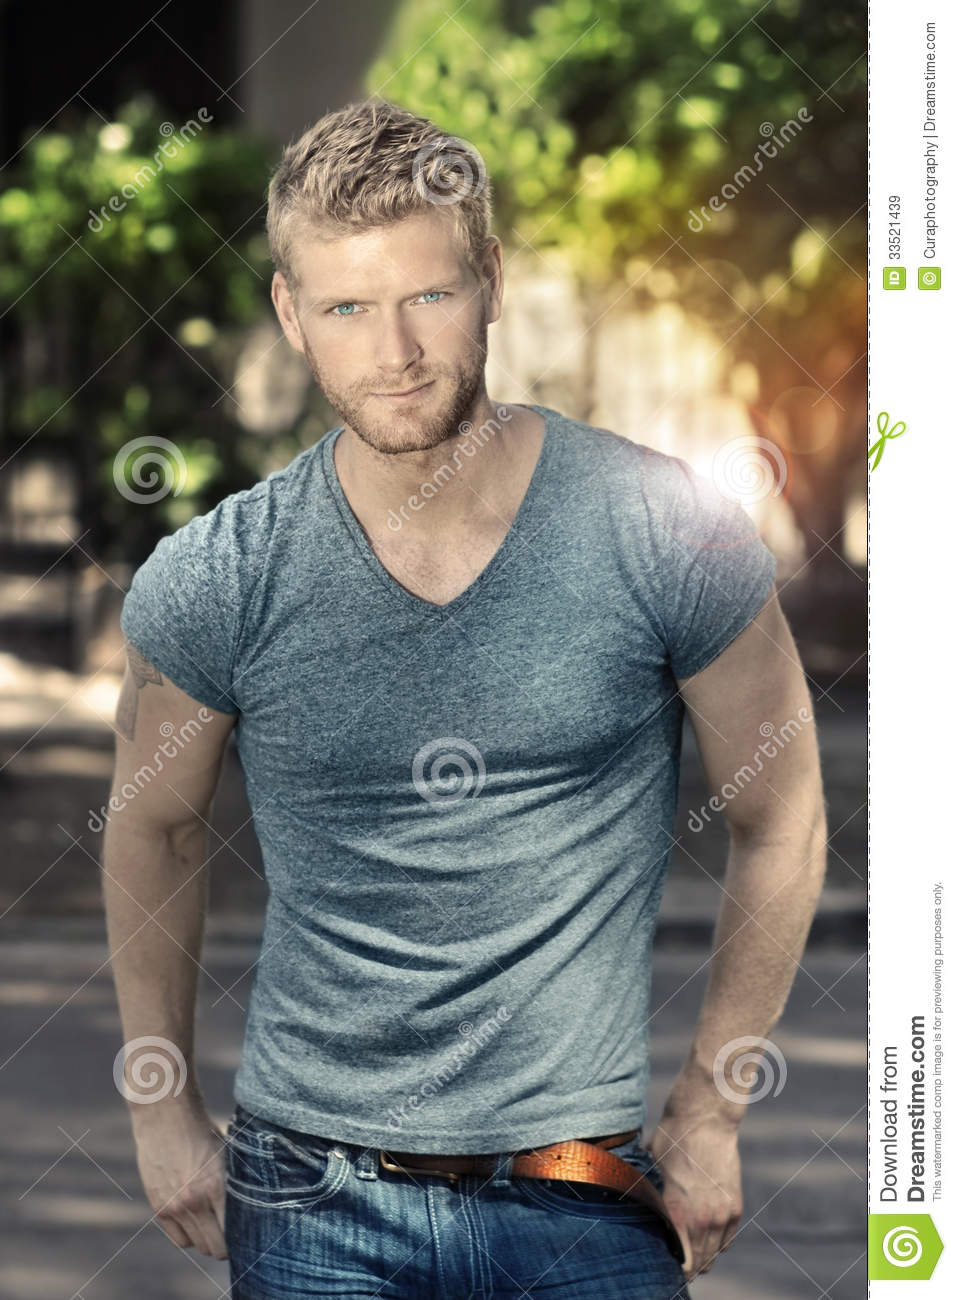 Young Man Royalty Free Stock Images - Image: 33521439  Good Looking Young Man